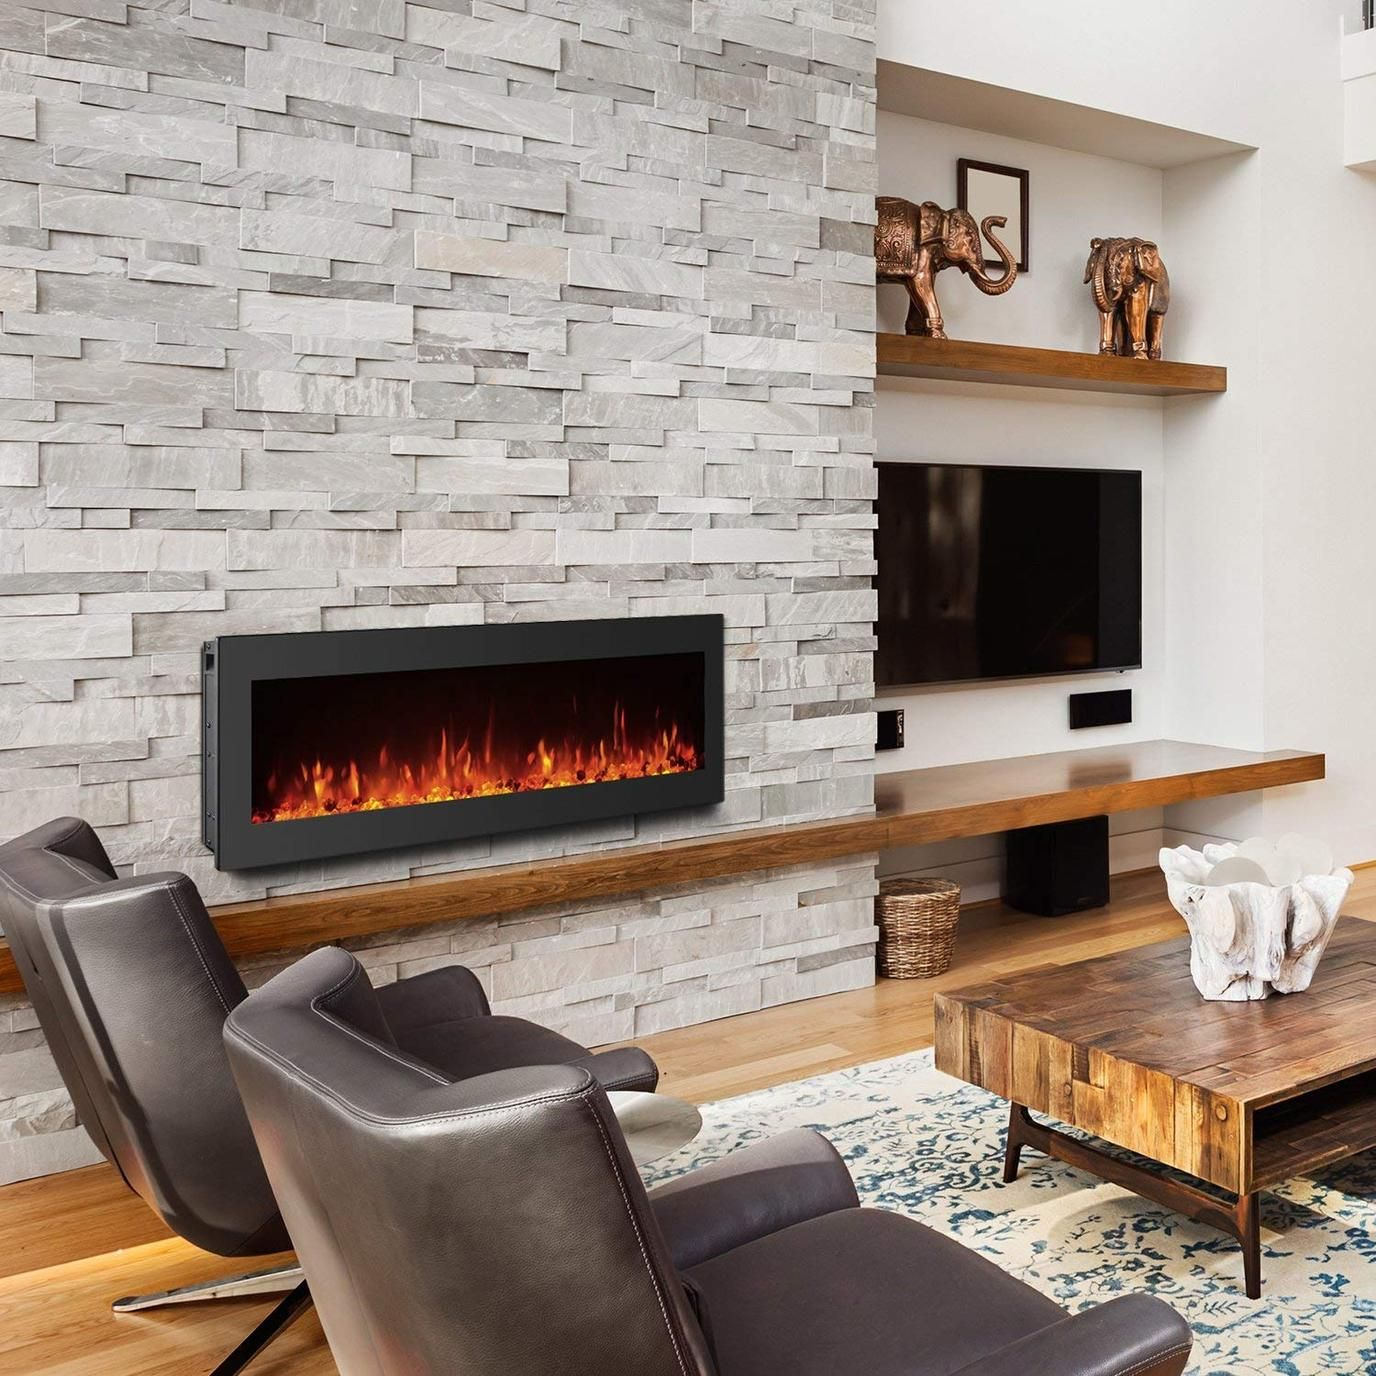 Wall Fireplace Luxury Gmhome Black Electric Fireplace Wall Mounted Heater